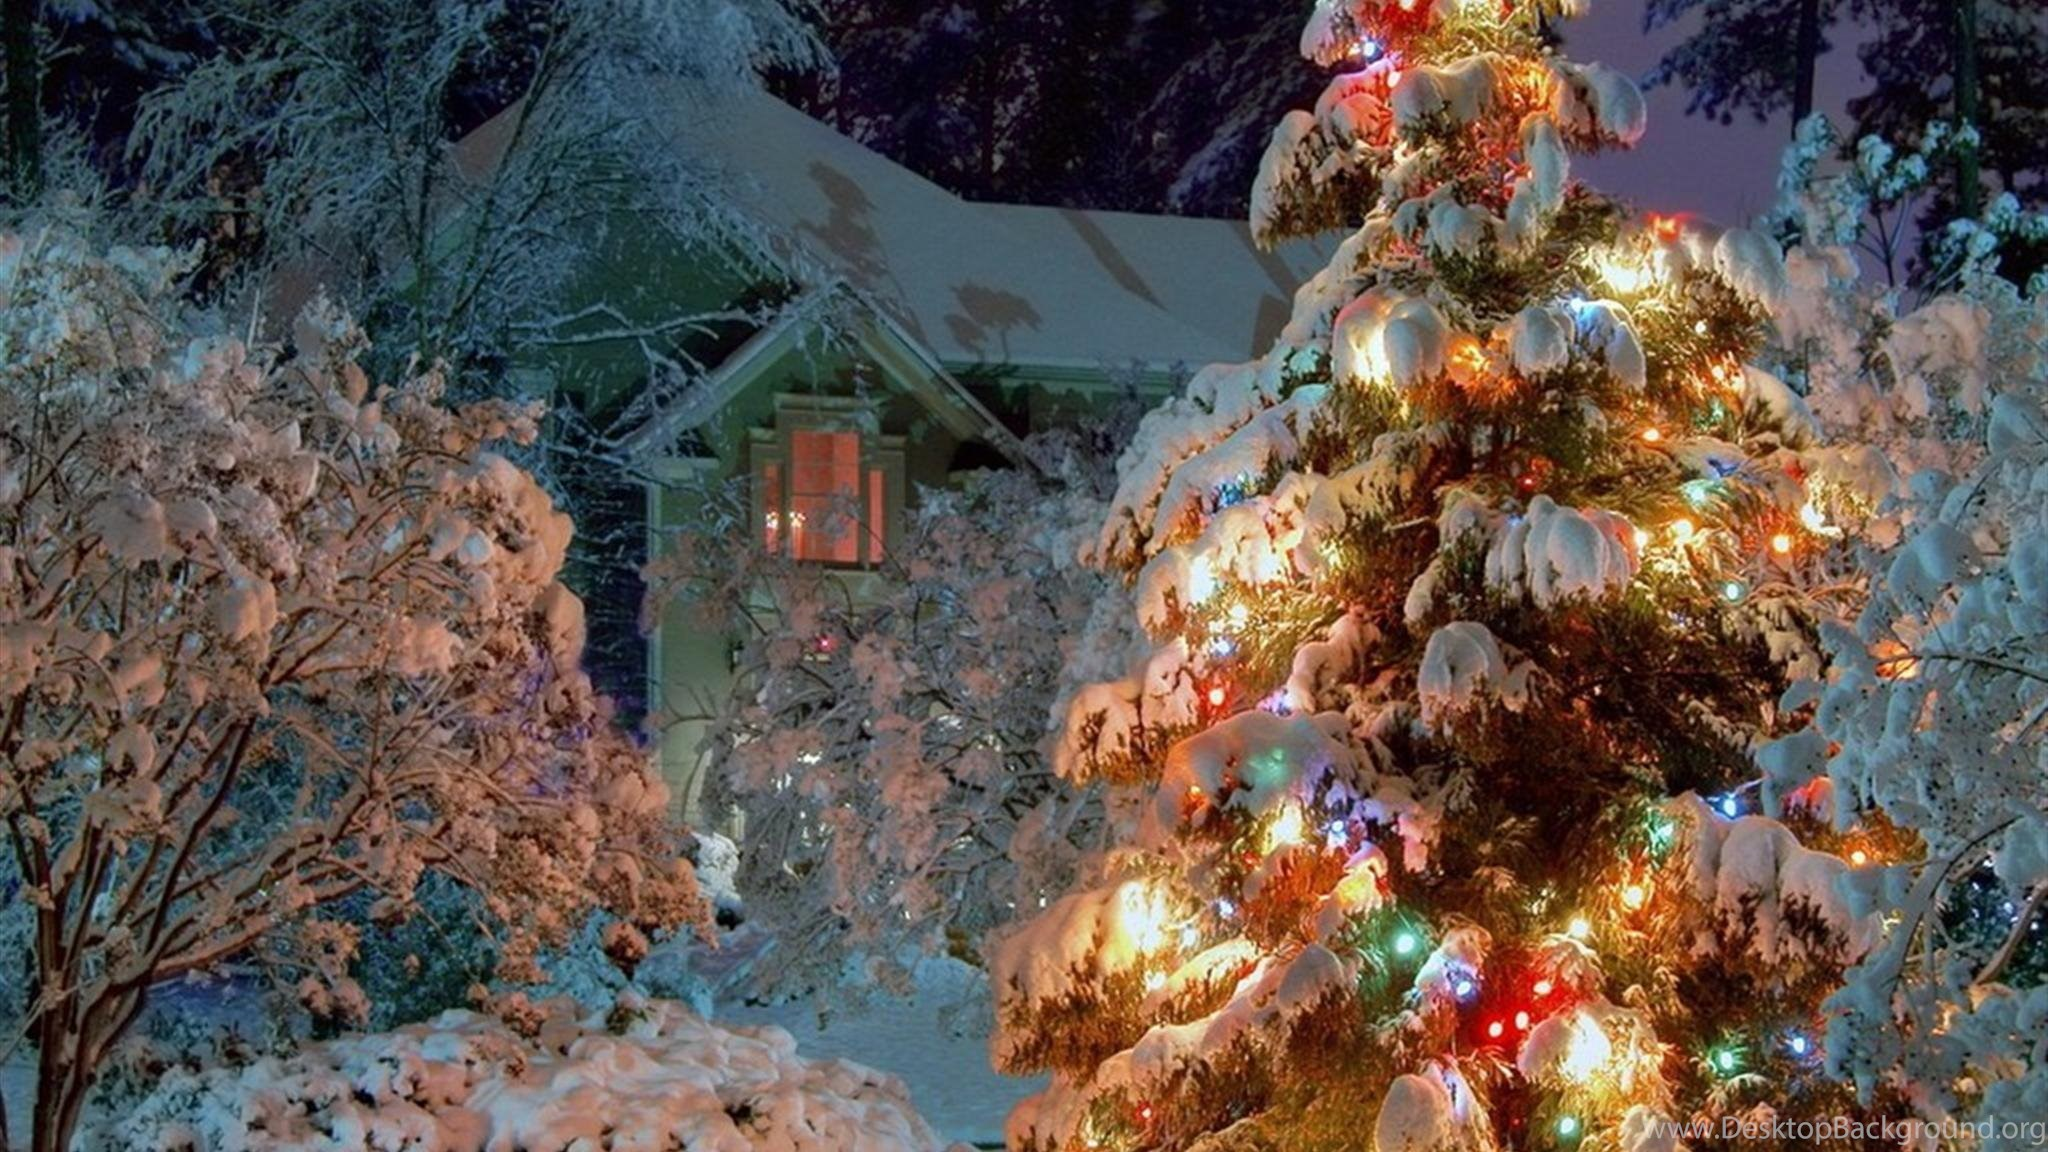 25 Christmas Ipad Wallpapers: Gallery For Hd Christmas Wallpapers Ipad Desktop Background